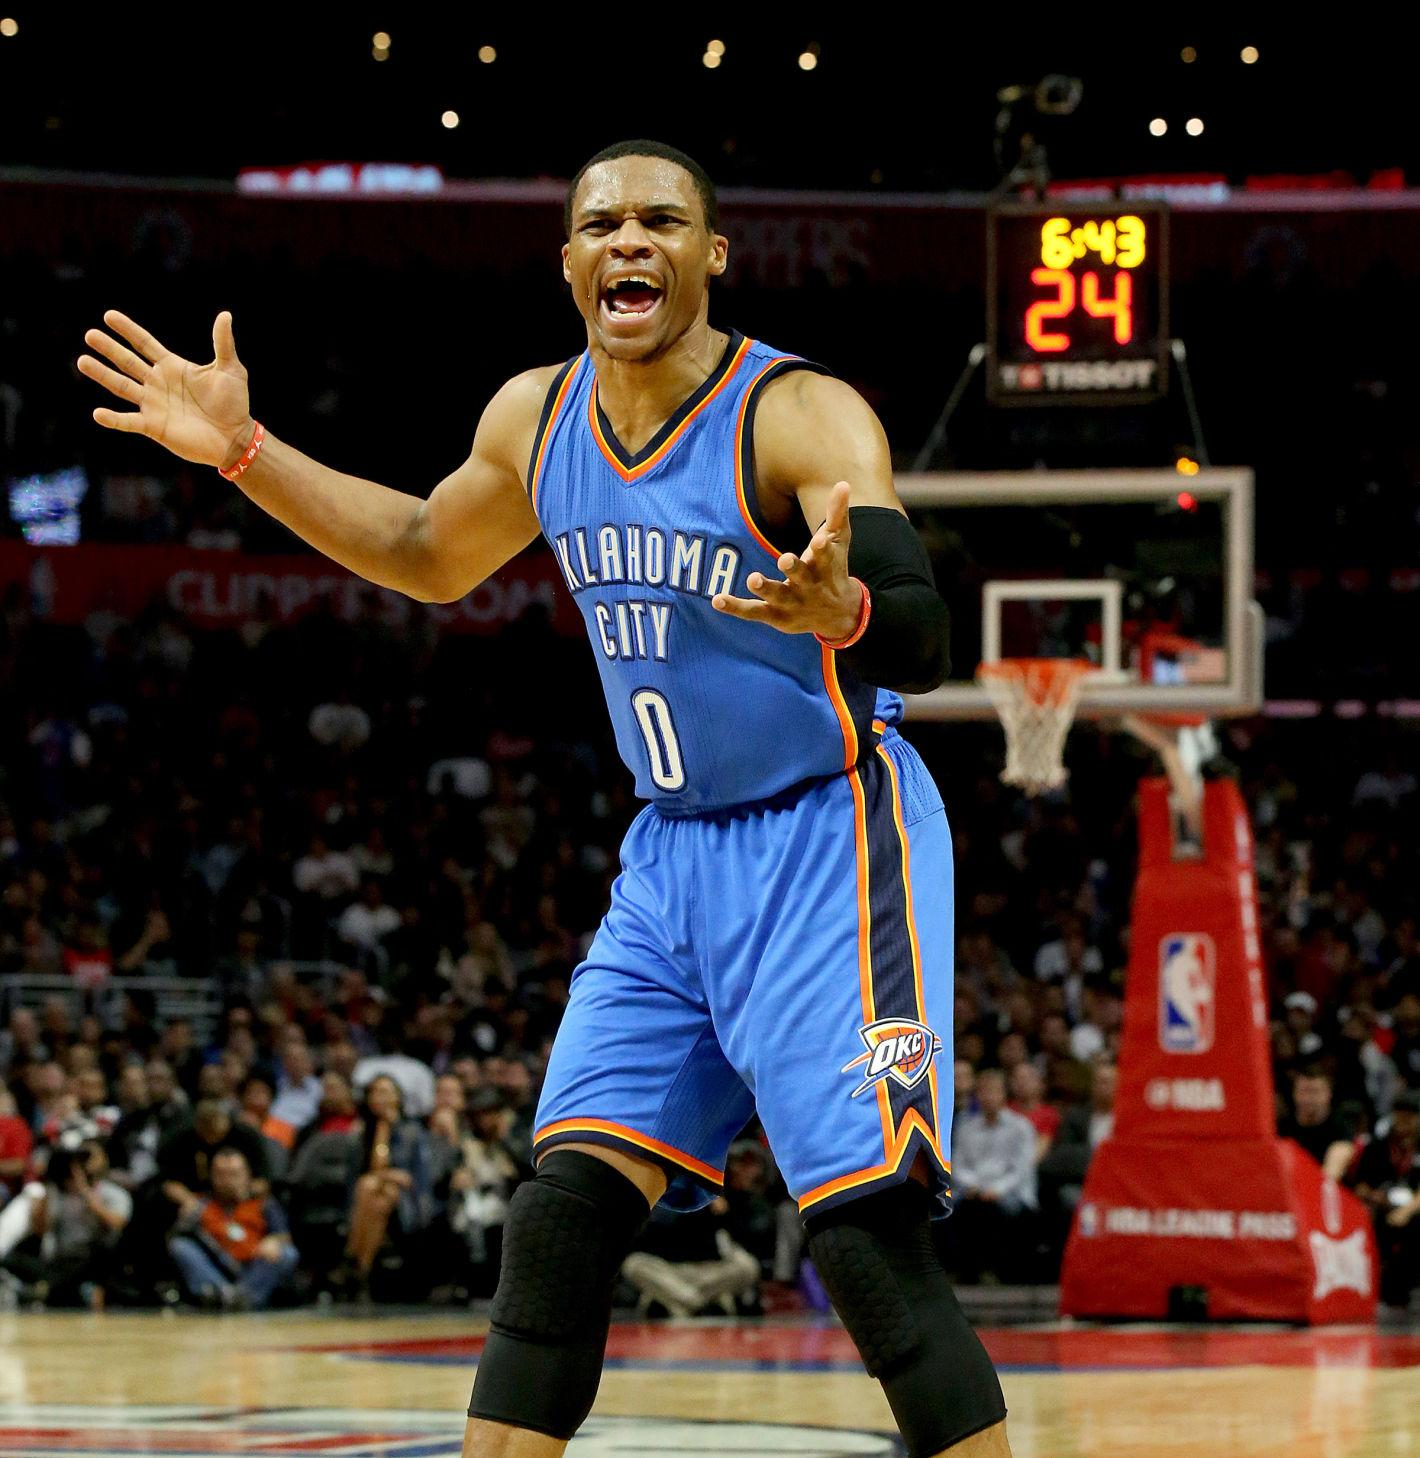 The Oklahoma City Thunder's Russell Westbrook complains to officials about a foul that he thought should be called against the Los Angeles Clippers in the third quarter on Wednesday, Nov. 2, 2016, at Staples Center in Los Angeles. The Thunder won, 85-83. (Luis Sinco/Los Angeles Times/TNS)